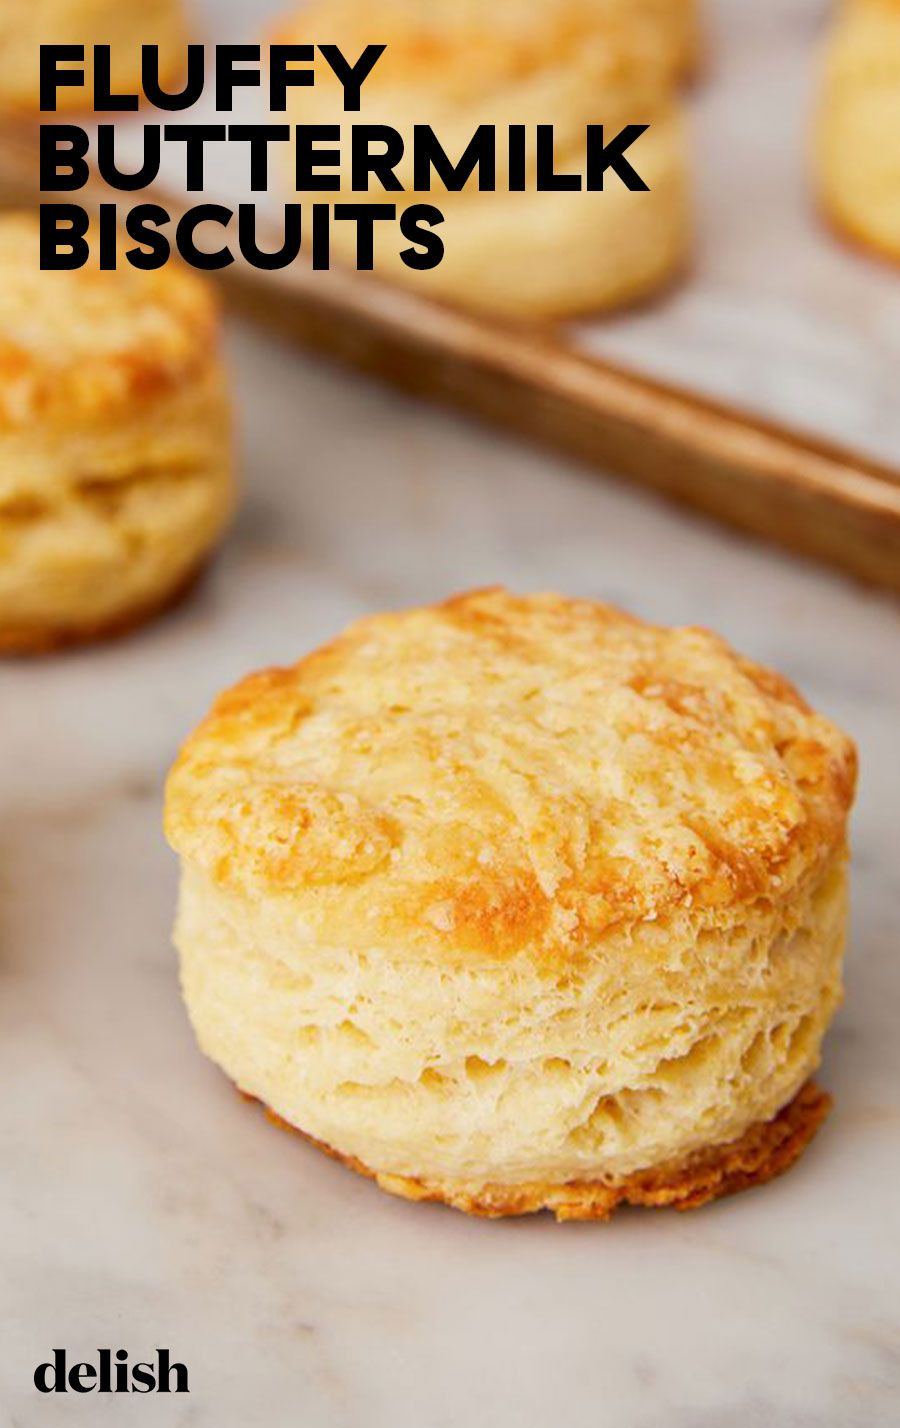 Fluffy Buttermilk Biscuits Easy Biscuit Recipe Homemade Biscuits Recipe Buttermilk Recipes